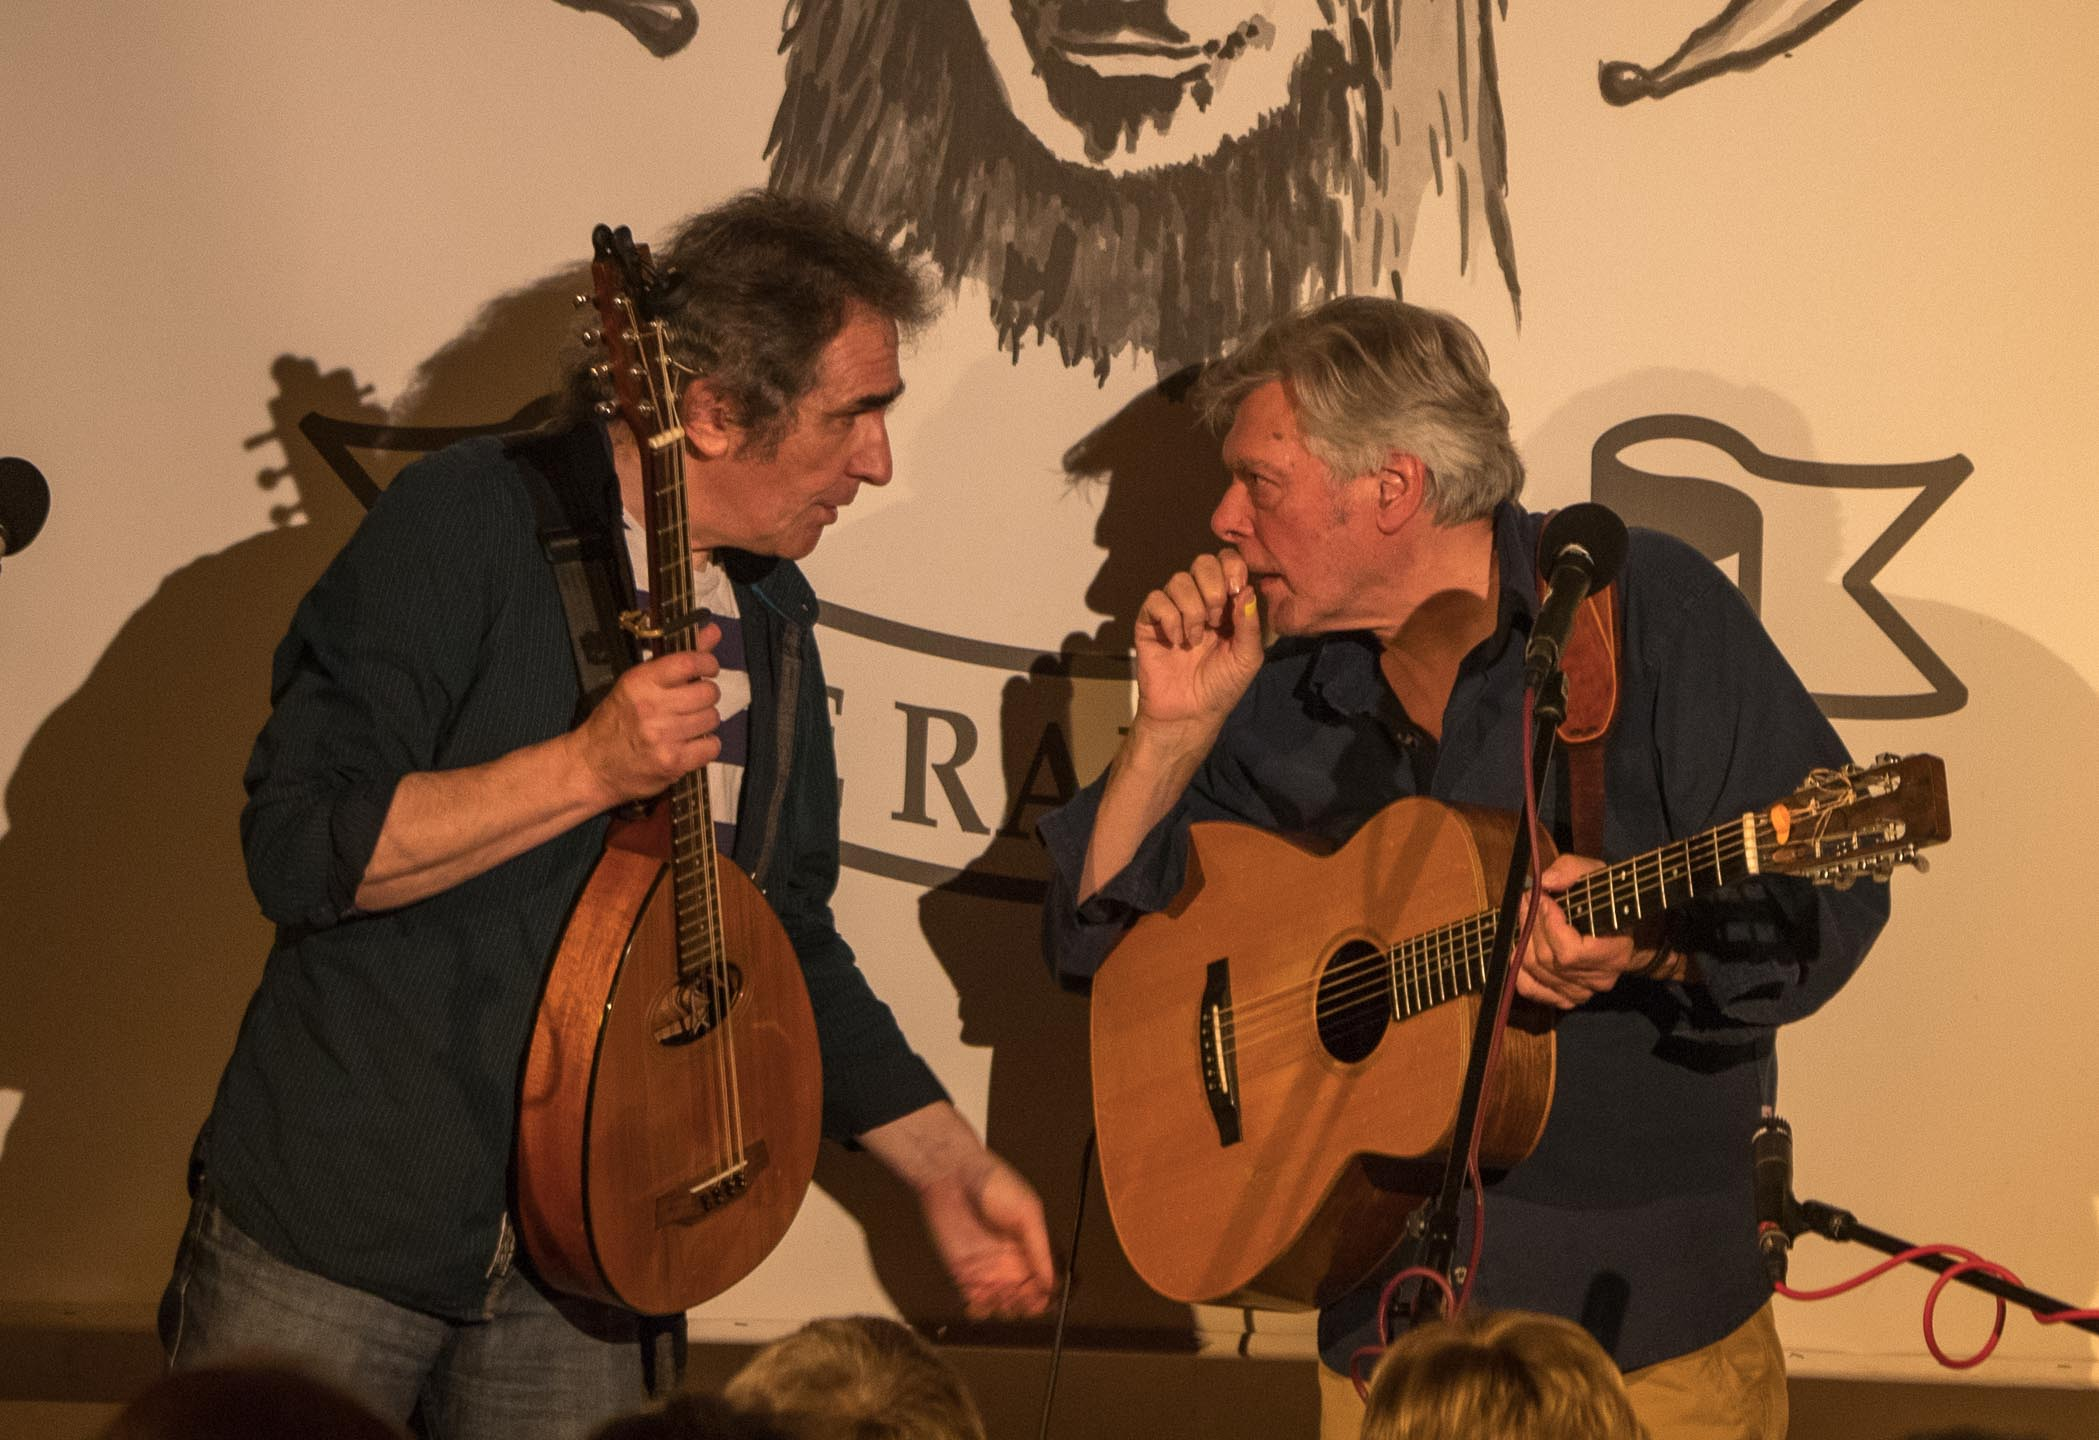 Steve Tilston and Jez Lowe